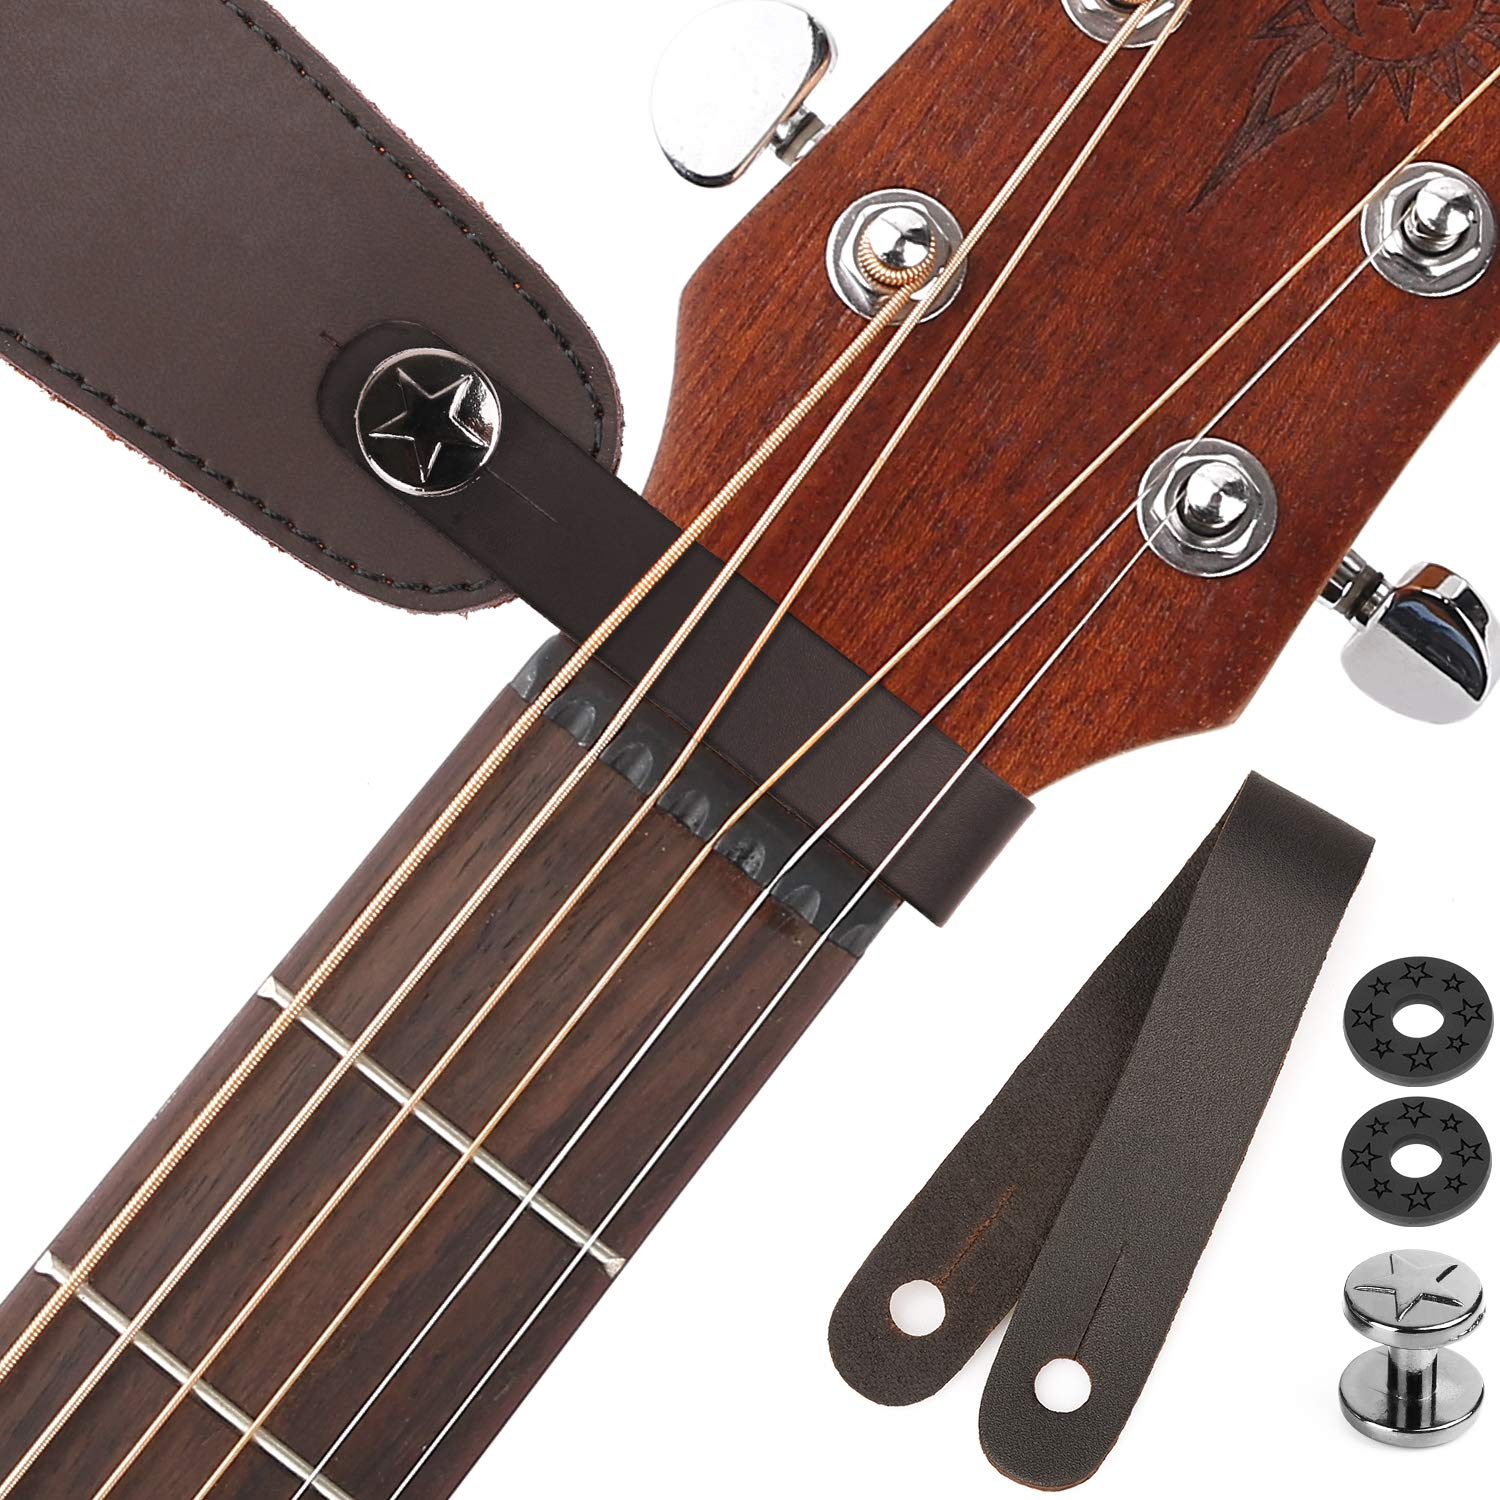 4 Pack MADE IN THE USA Guitar Strap Lock Savers